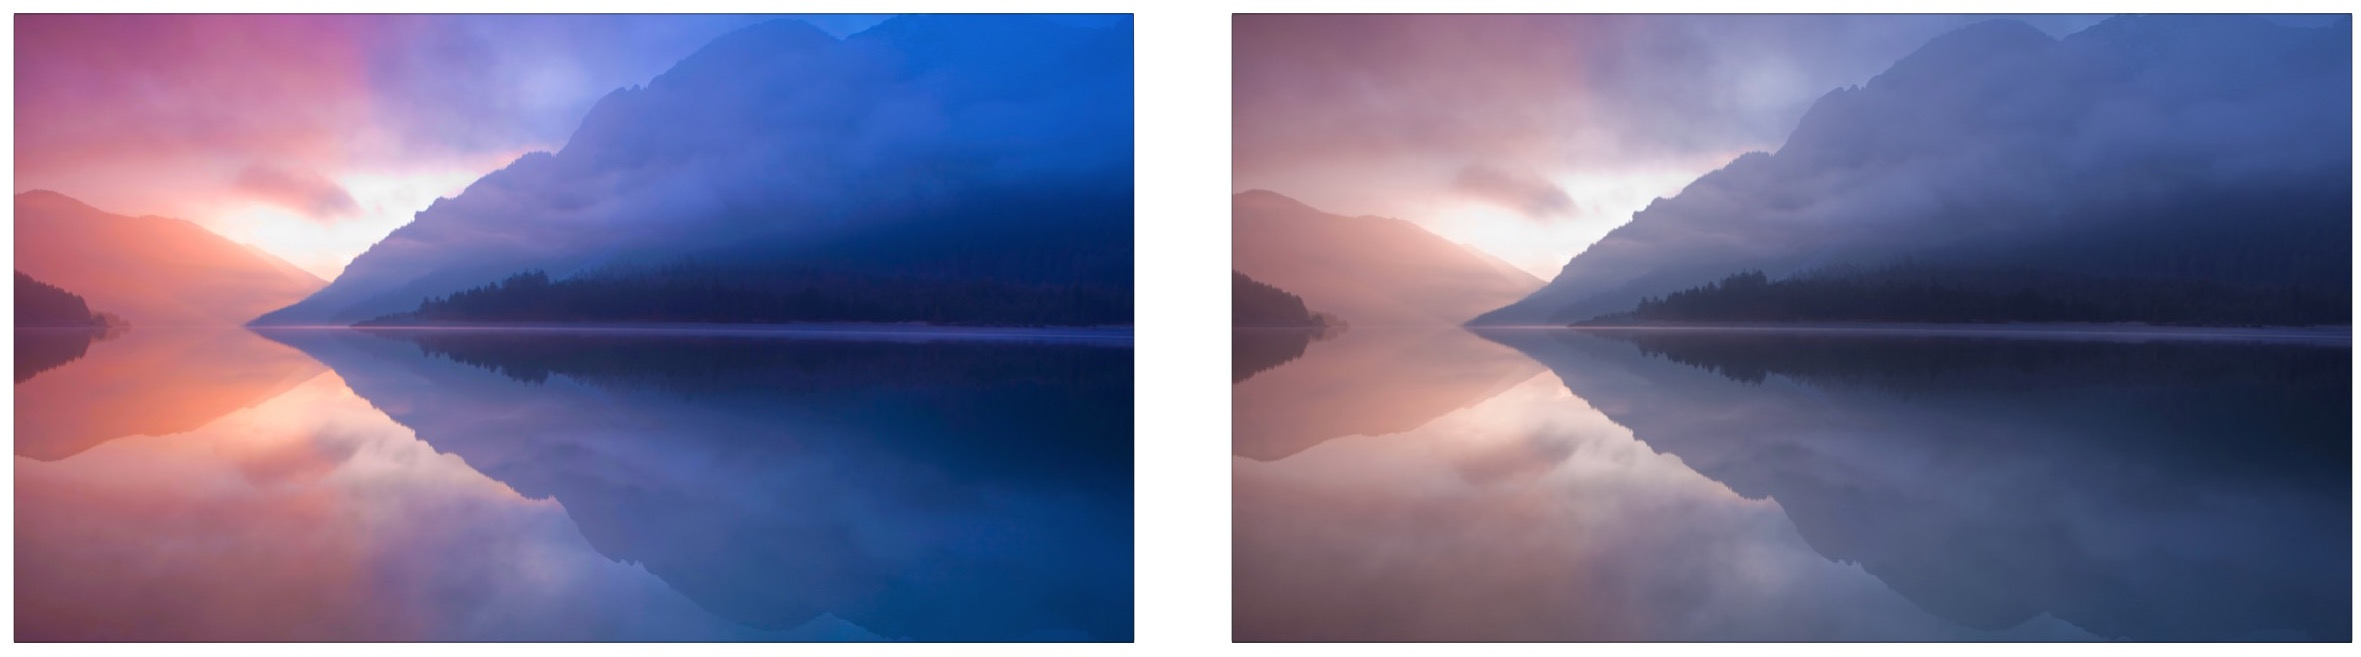 Before and after adjusting the color saturation in Mac OS X